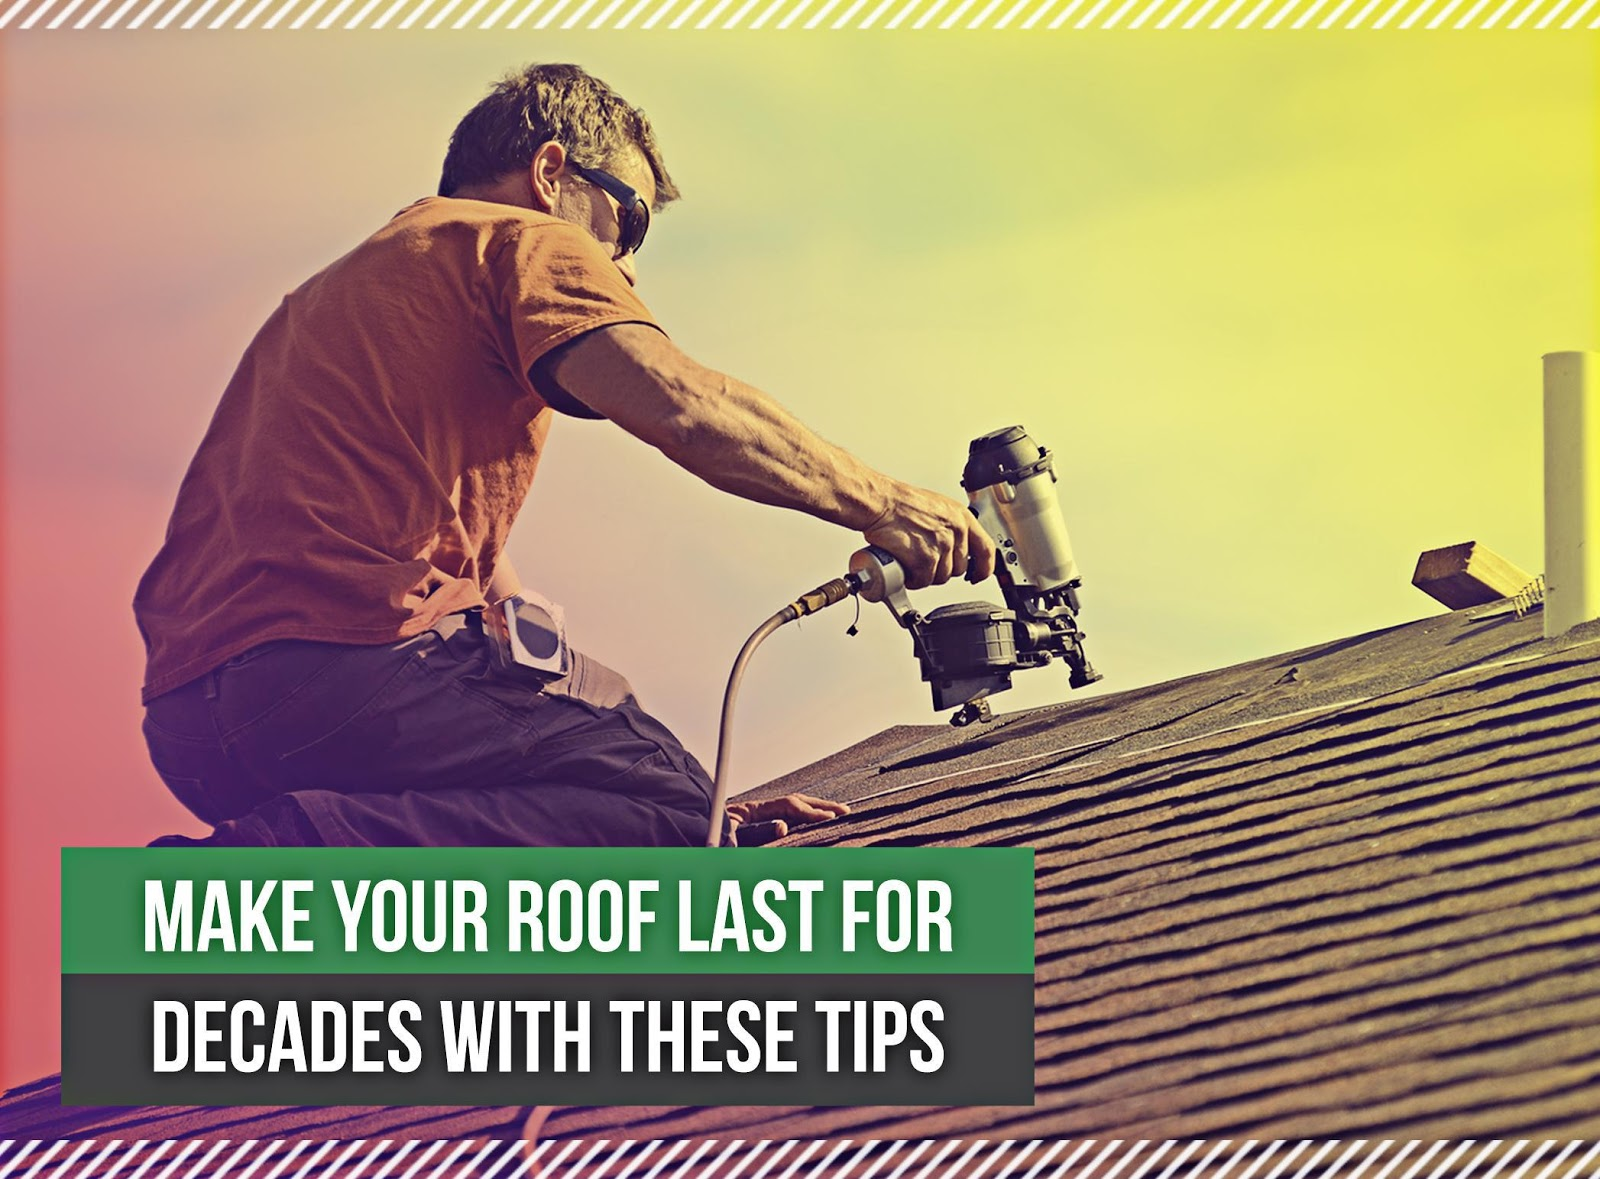 Make Your Roof Last for Decades With These Tips